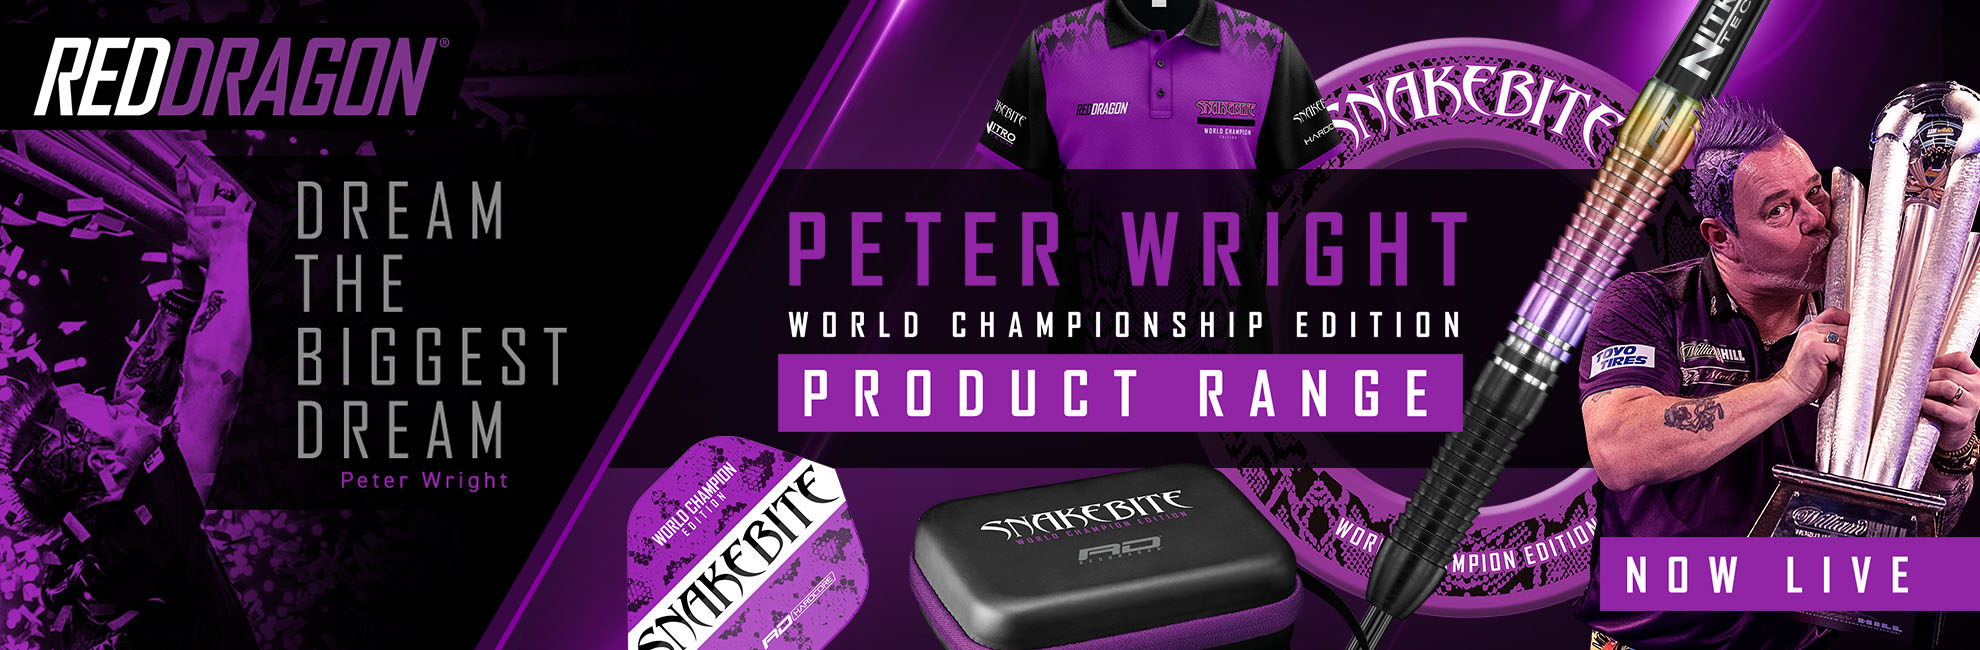 Red Dragon Dart News Neuheiten 2020 Red Dragon Peter Wright World Championship 2020 Edition Weltmeister Steel und Softdarts 2020